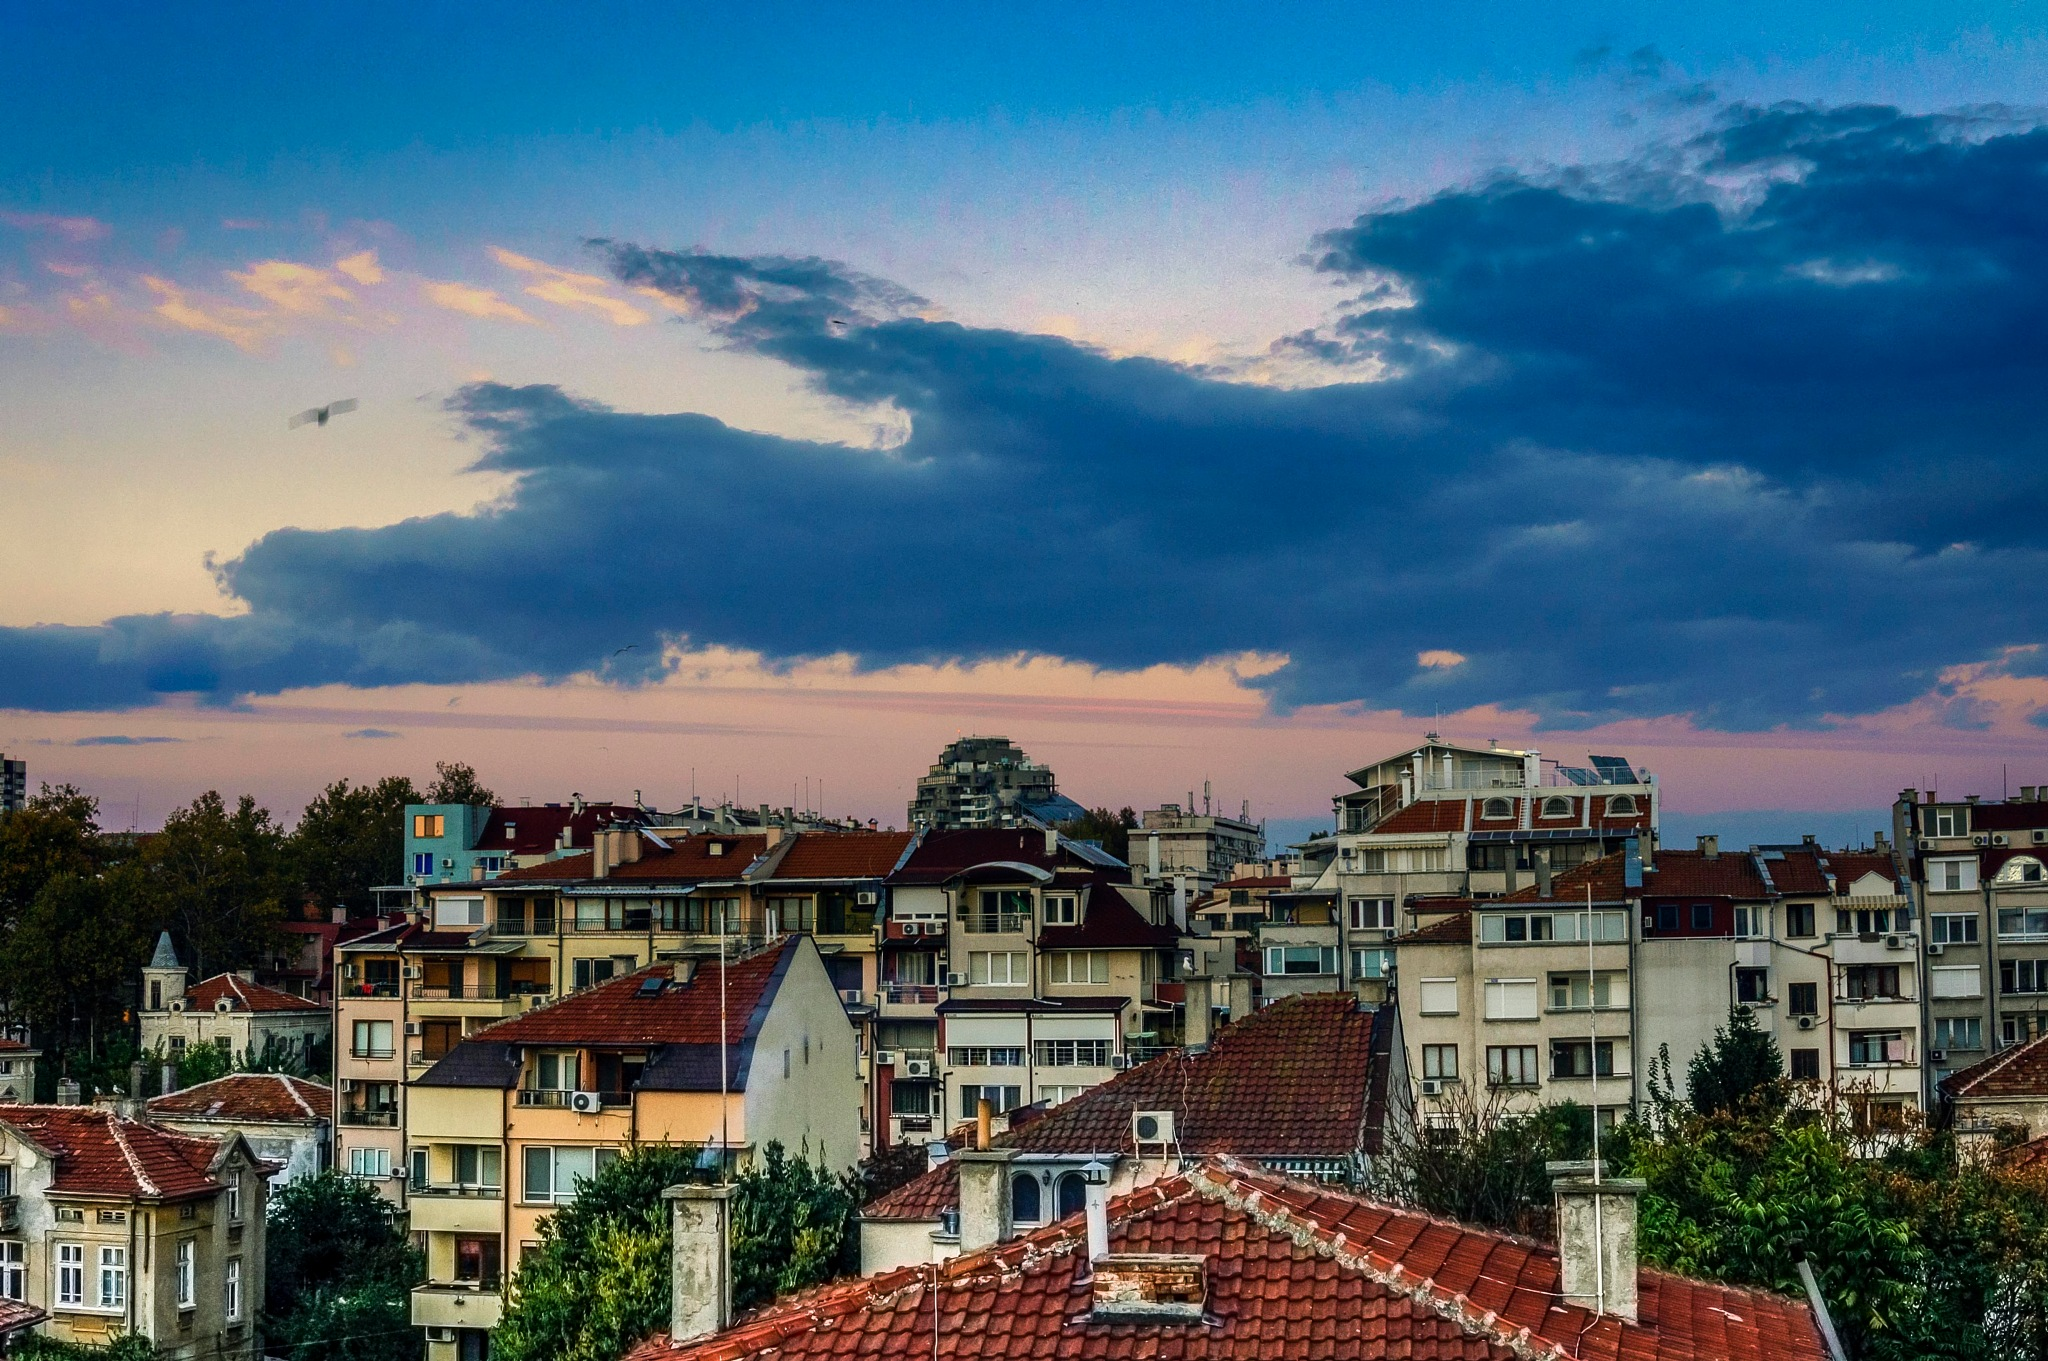 Sunset above roofs of Burgas_1 by Venelin Todorov